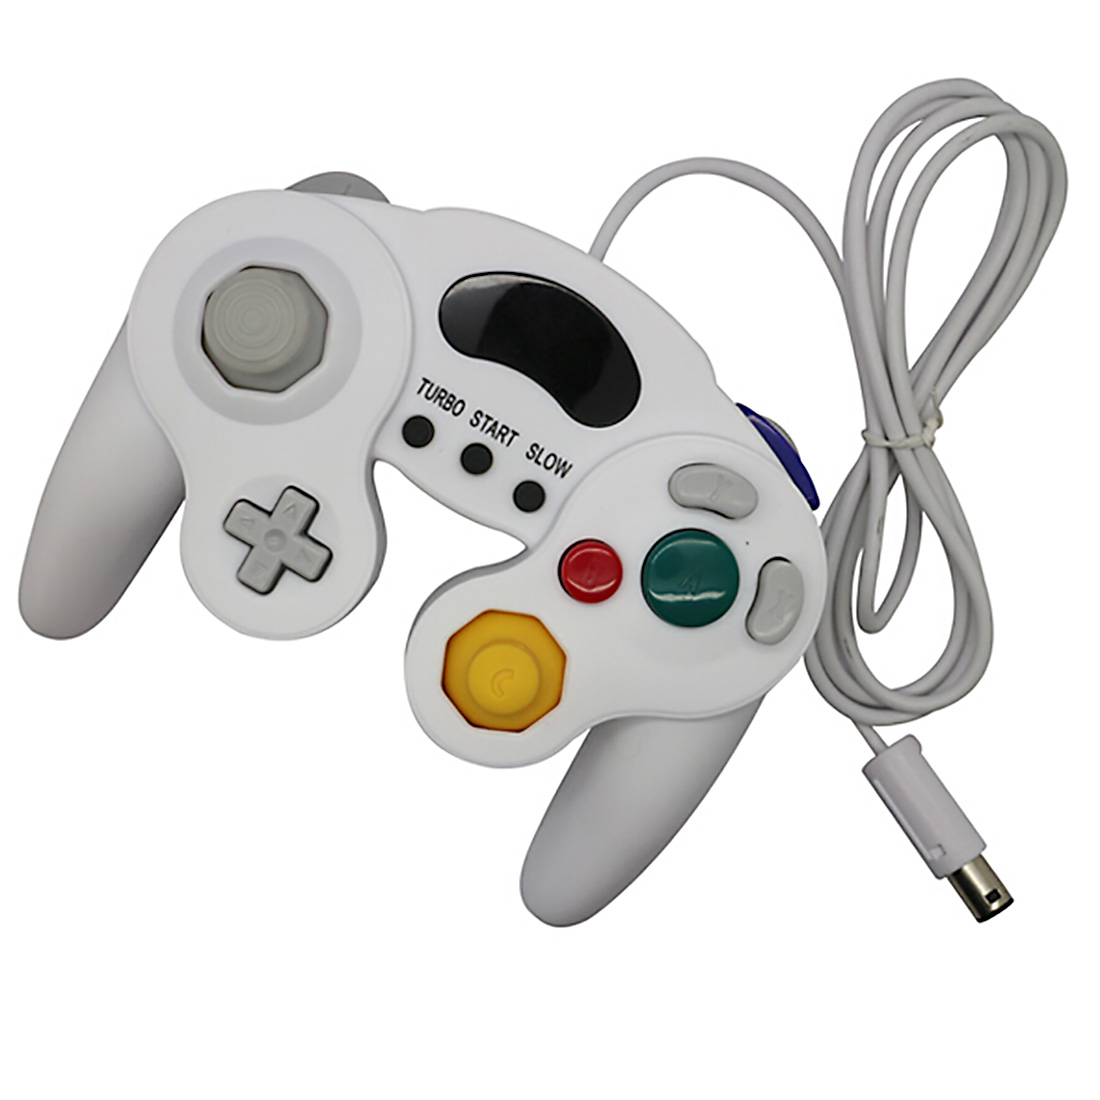 Hot Selling classical Wired Joystick Gamepad Gaming Controller Remote for PC Game consoles Nintendo Wii<br><br>Aliexpress